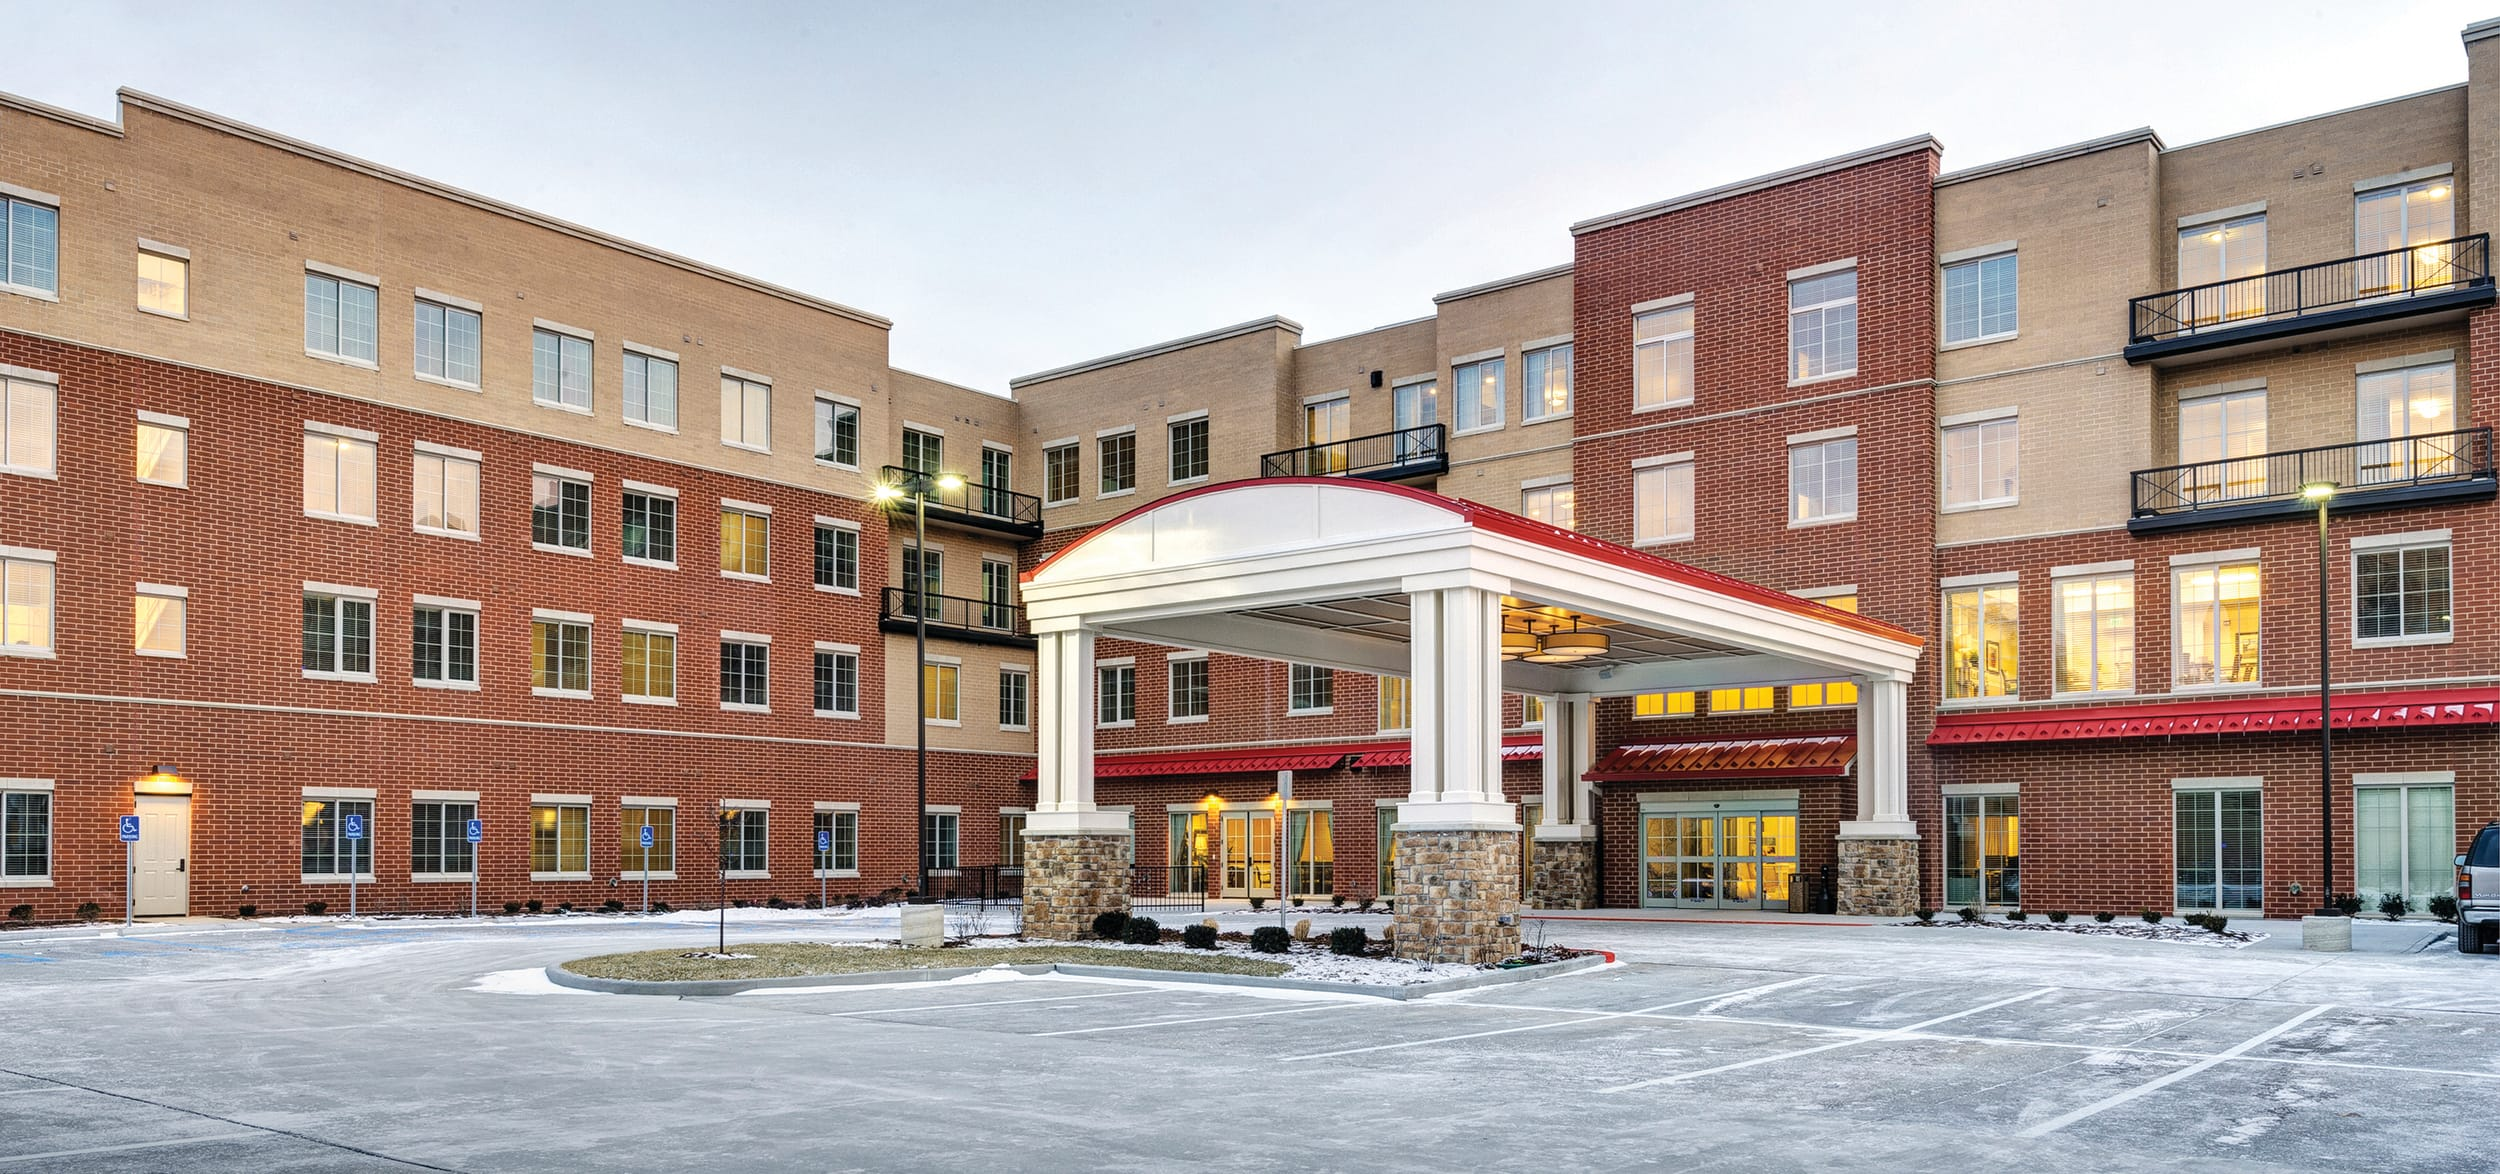 Learn about Creve Coeur Assisted Living & Memory Care in Creve Coeur, MO